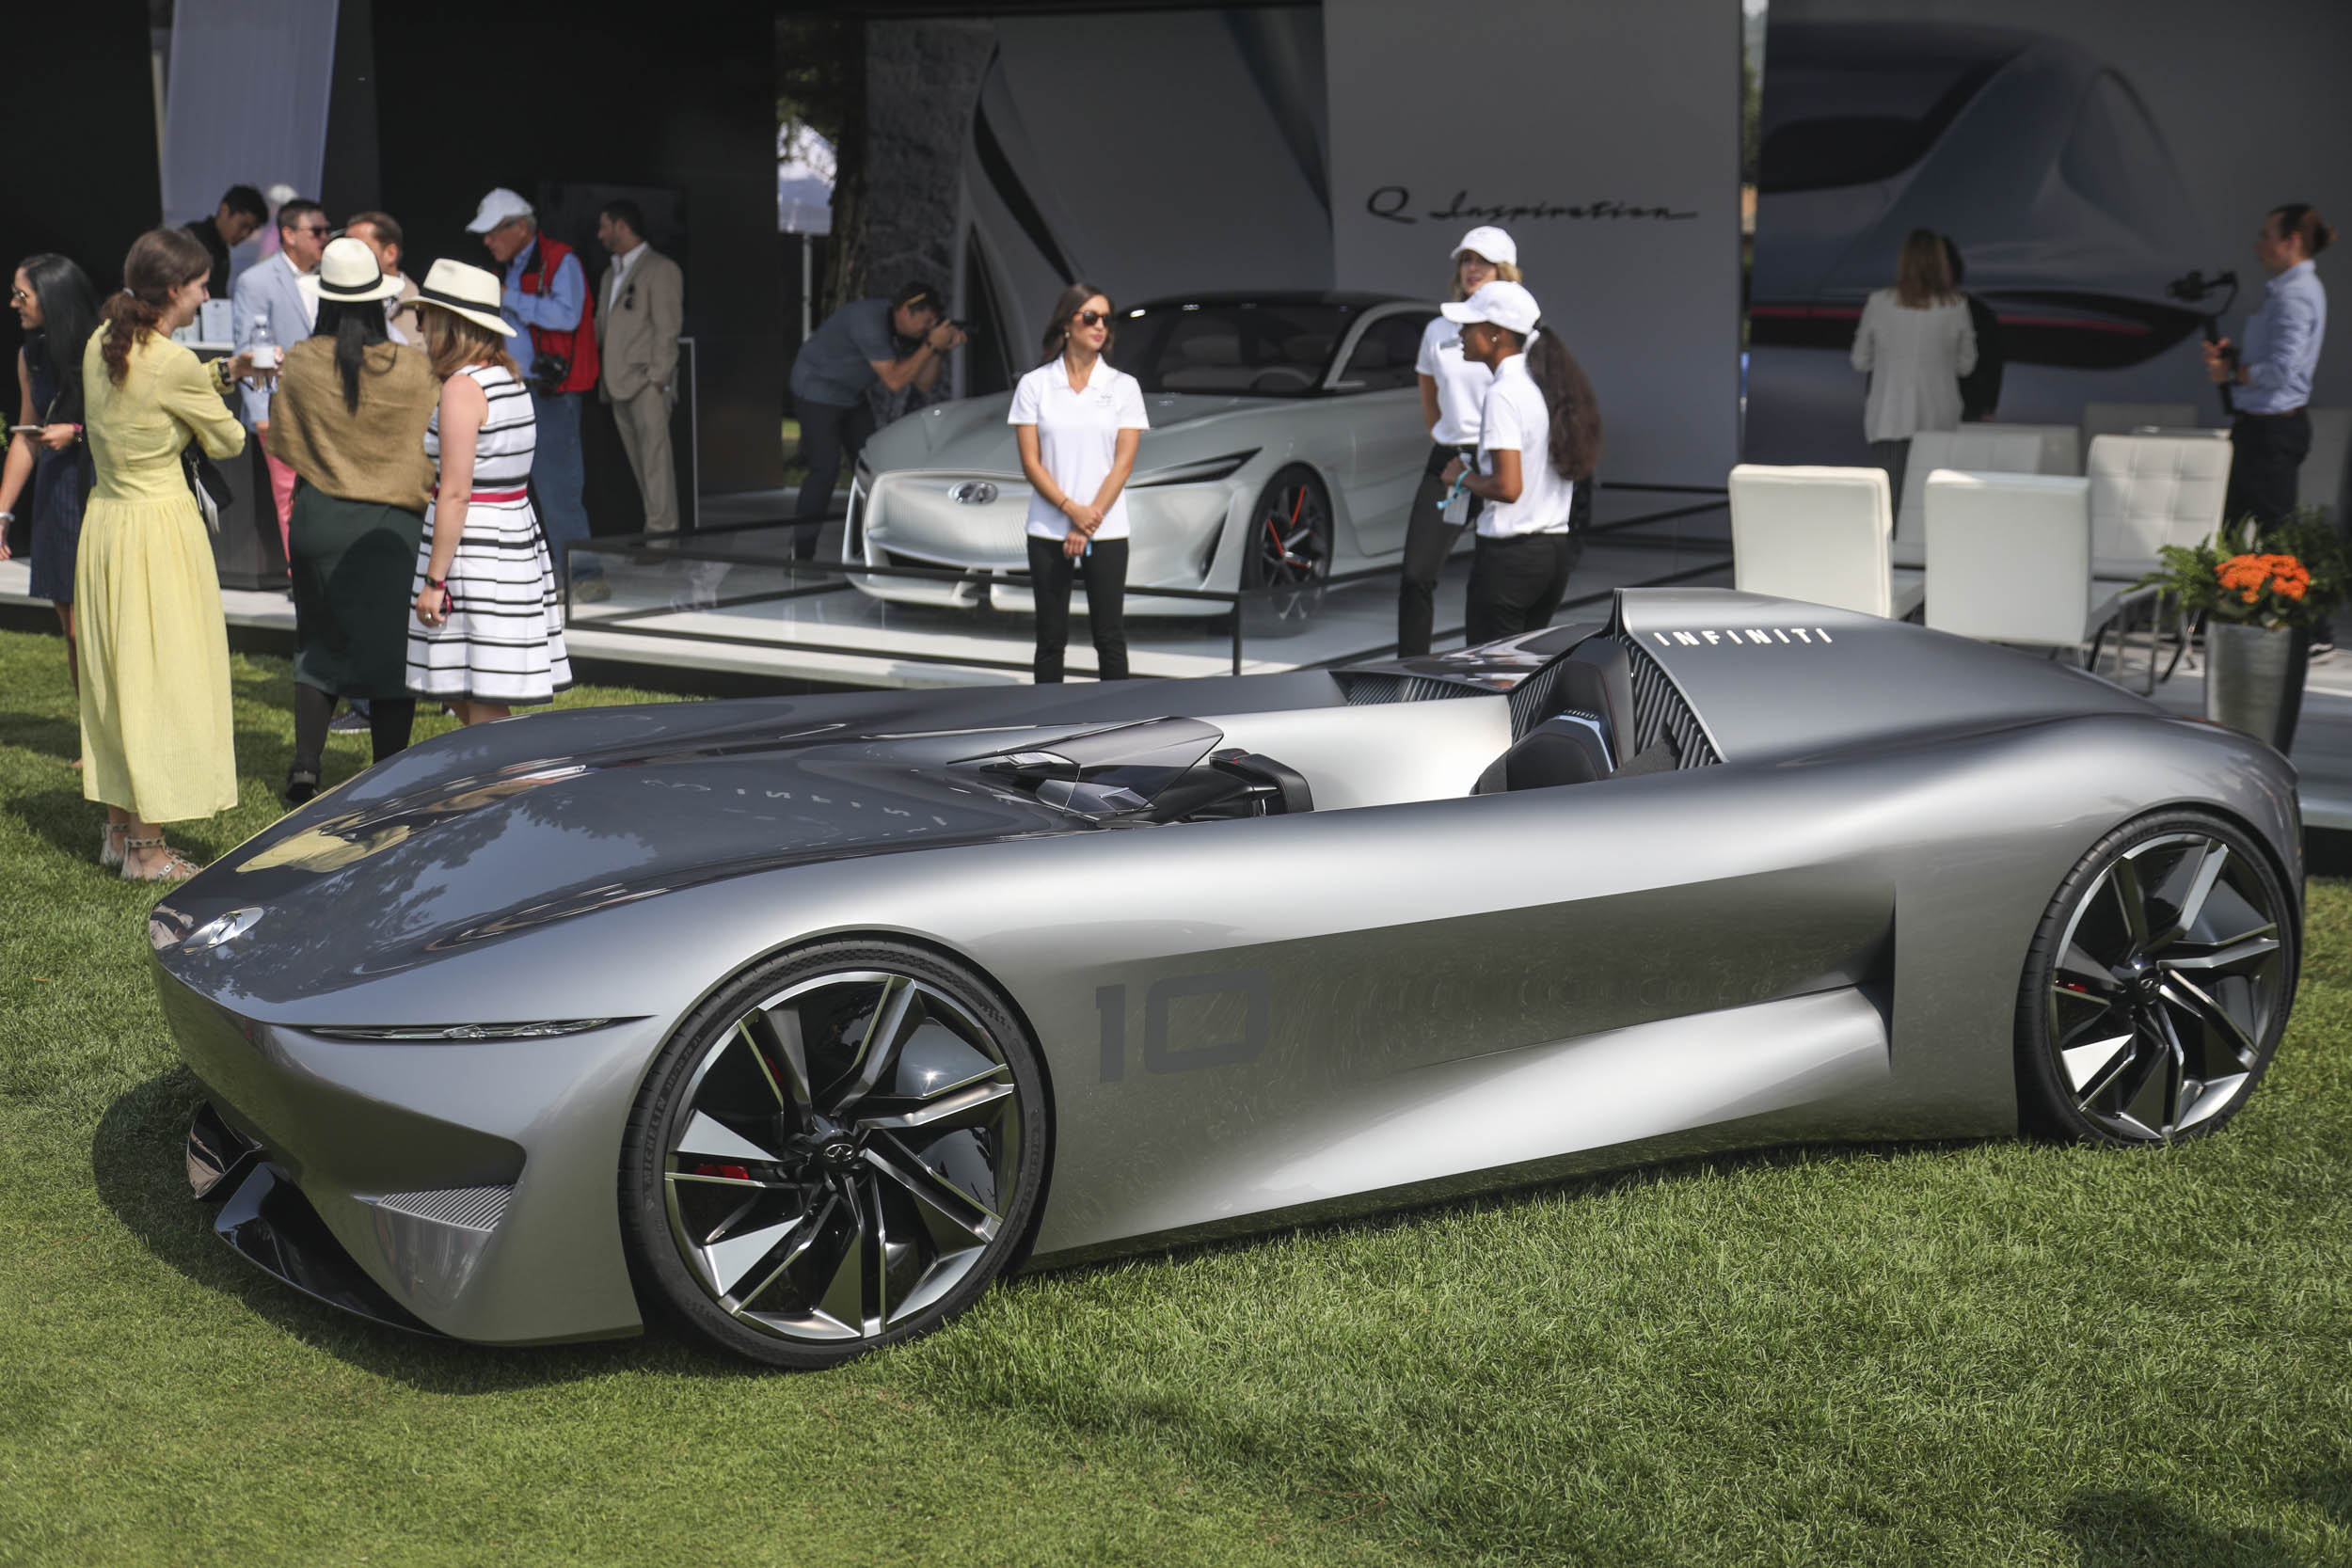 The Quail, a Motorsports Gathering Infinity 10 roadster concept